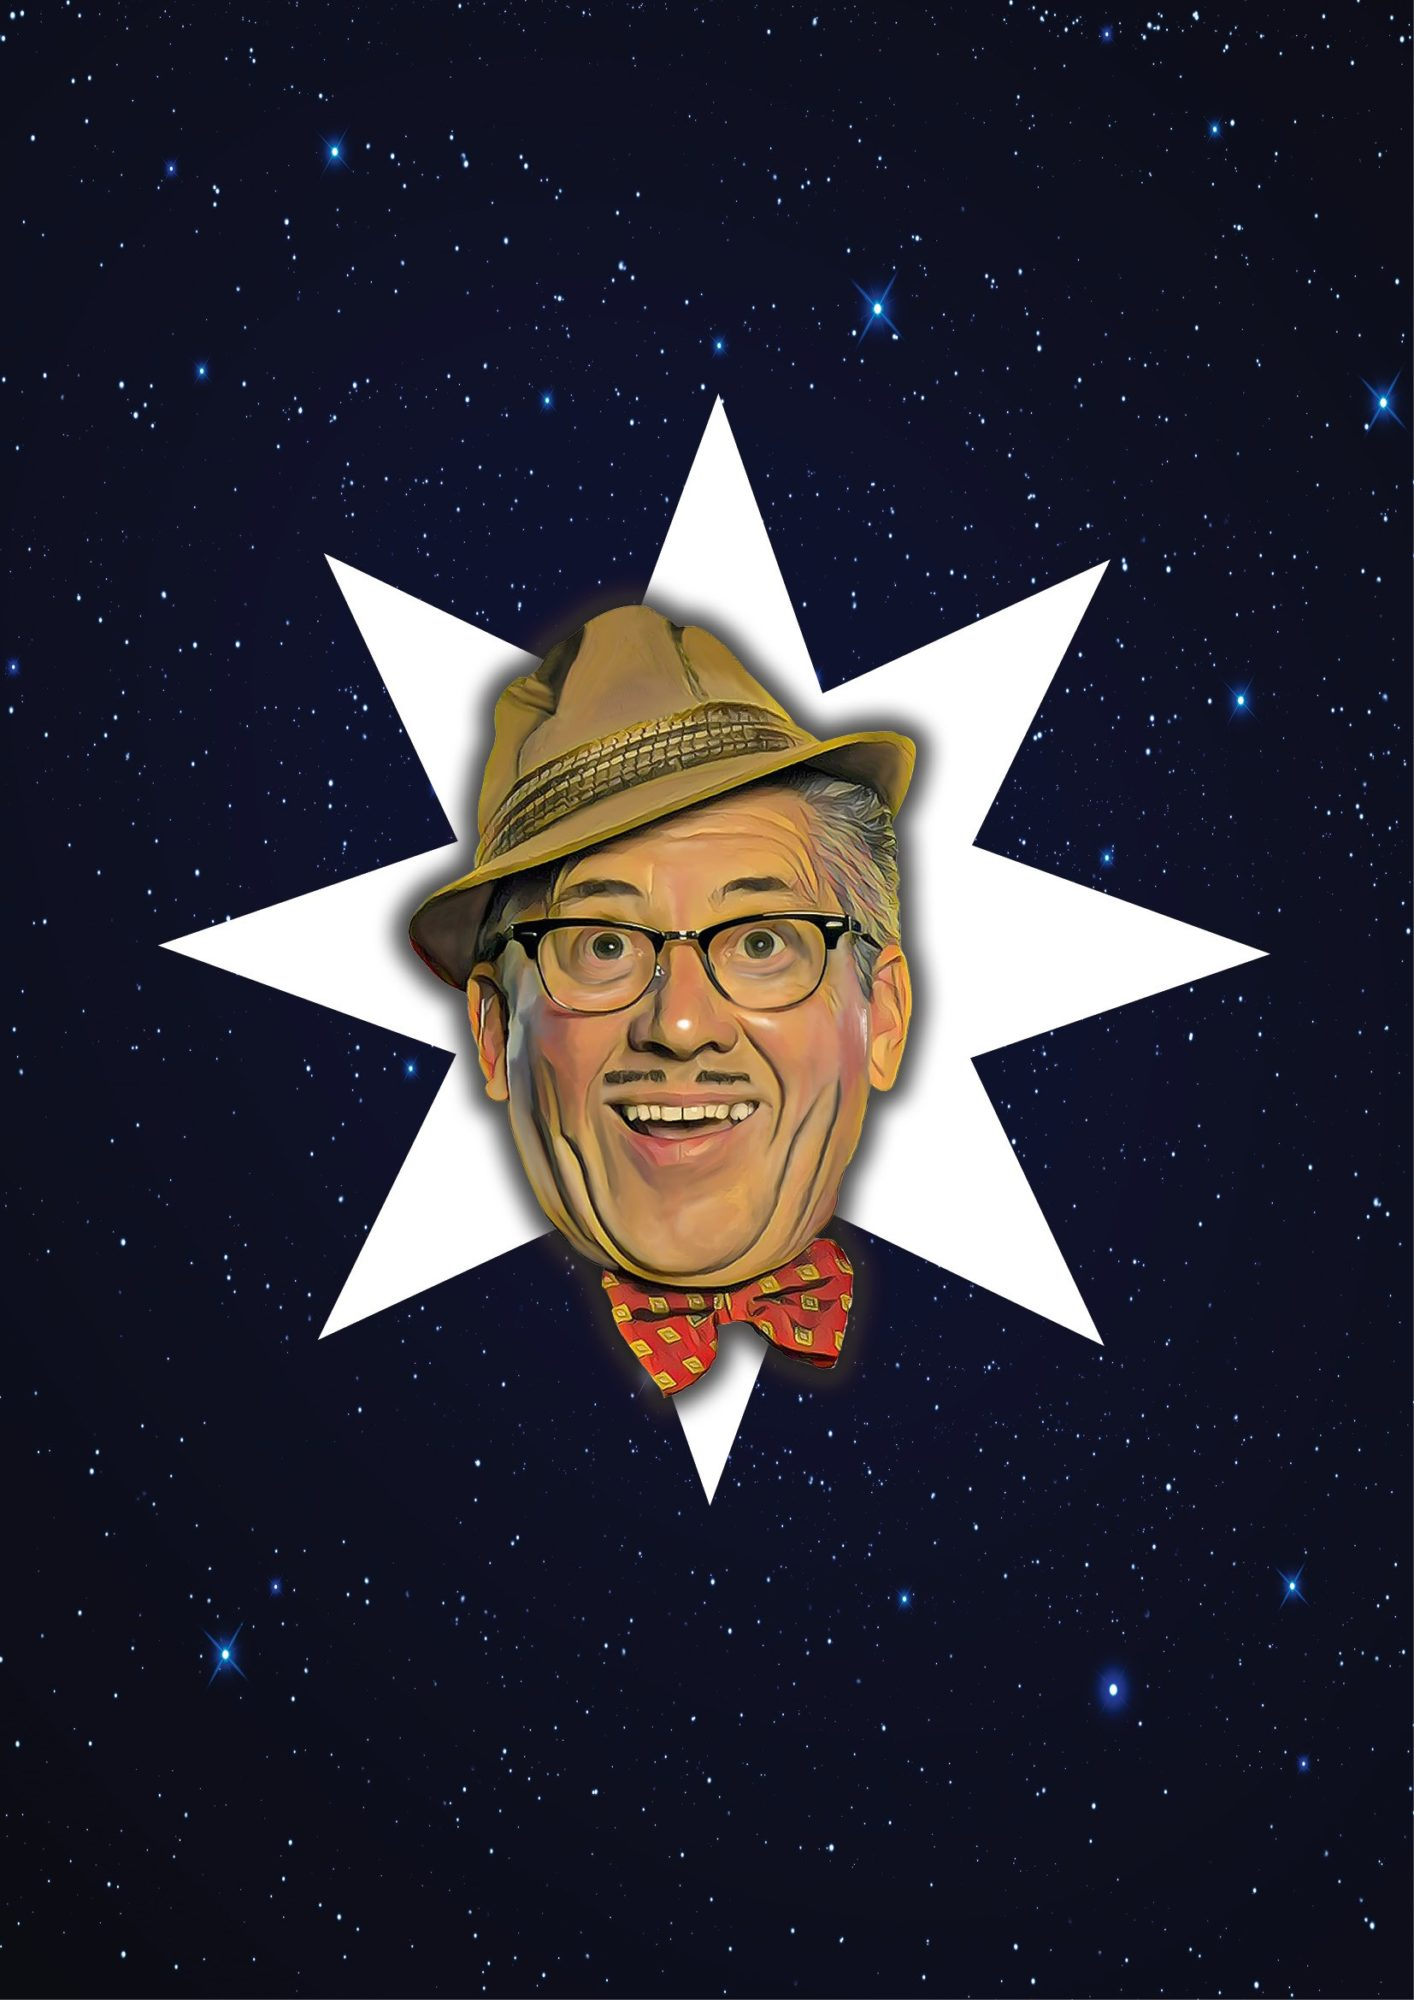 Aberdeen Comedy Festival: Count Arthur Strong- 'Is There Anybody Out There?'